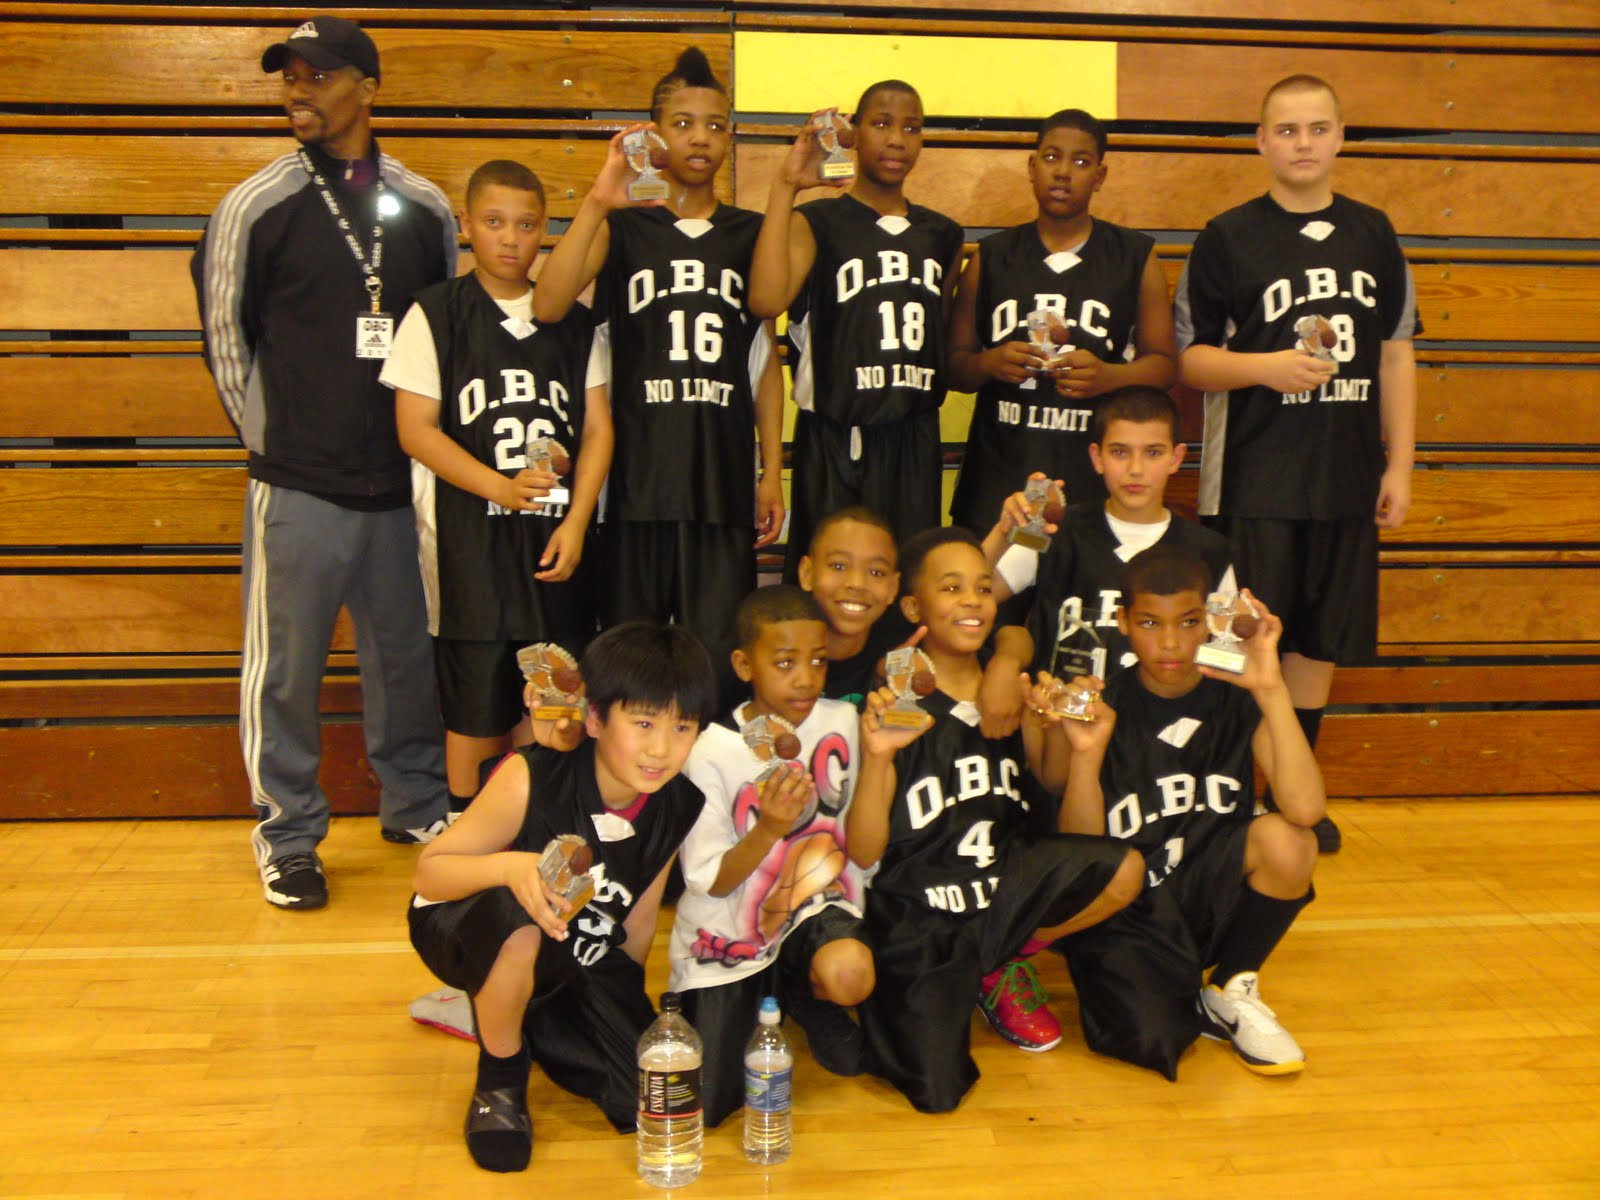 Obc Basketball